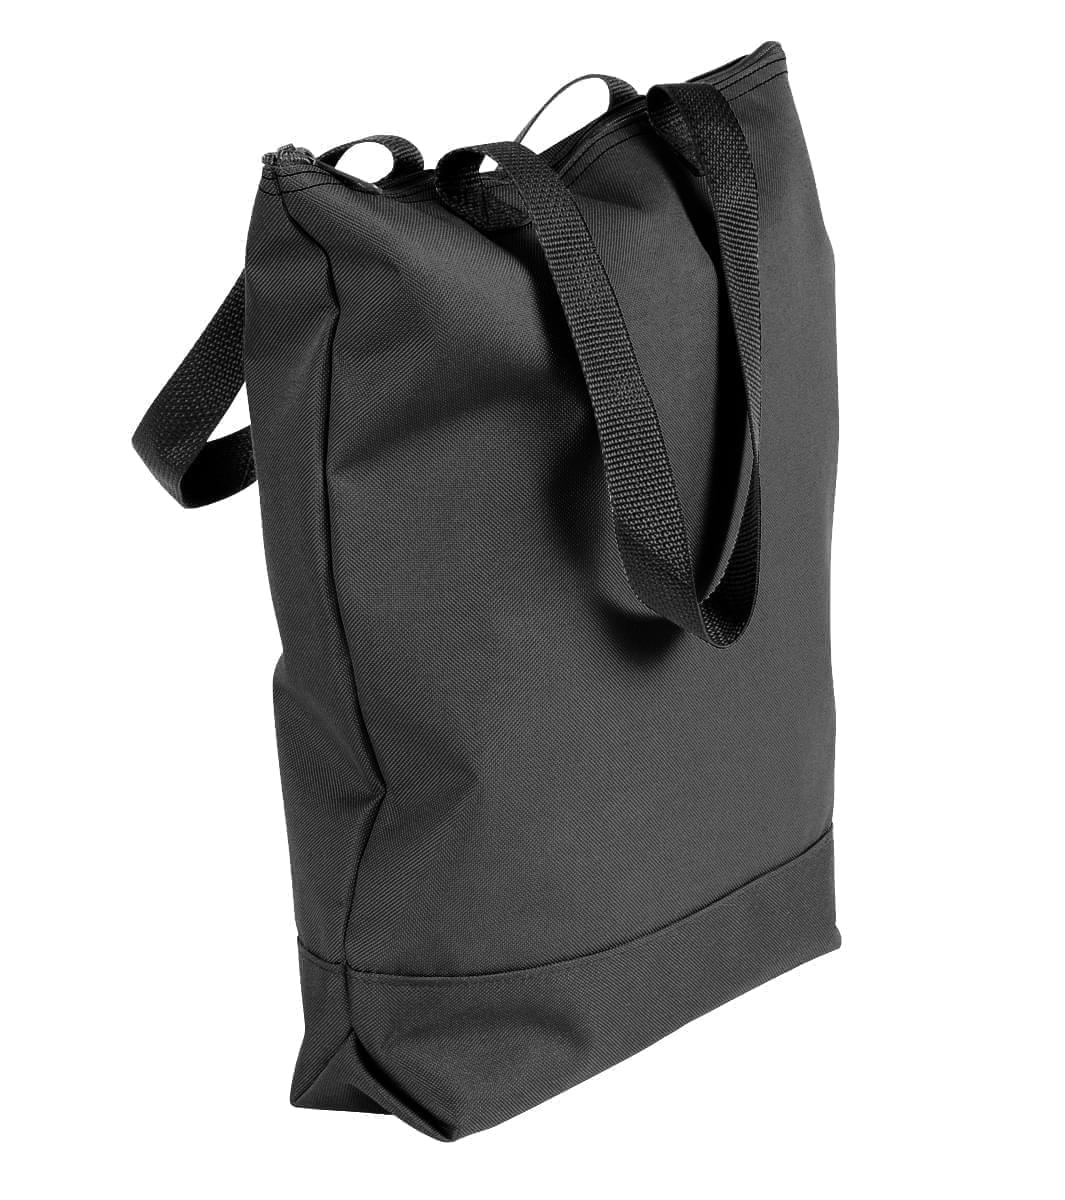 USA Made Canvas Portfolio Tote Bags, Black-Black, 1AAMX1UAHR